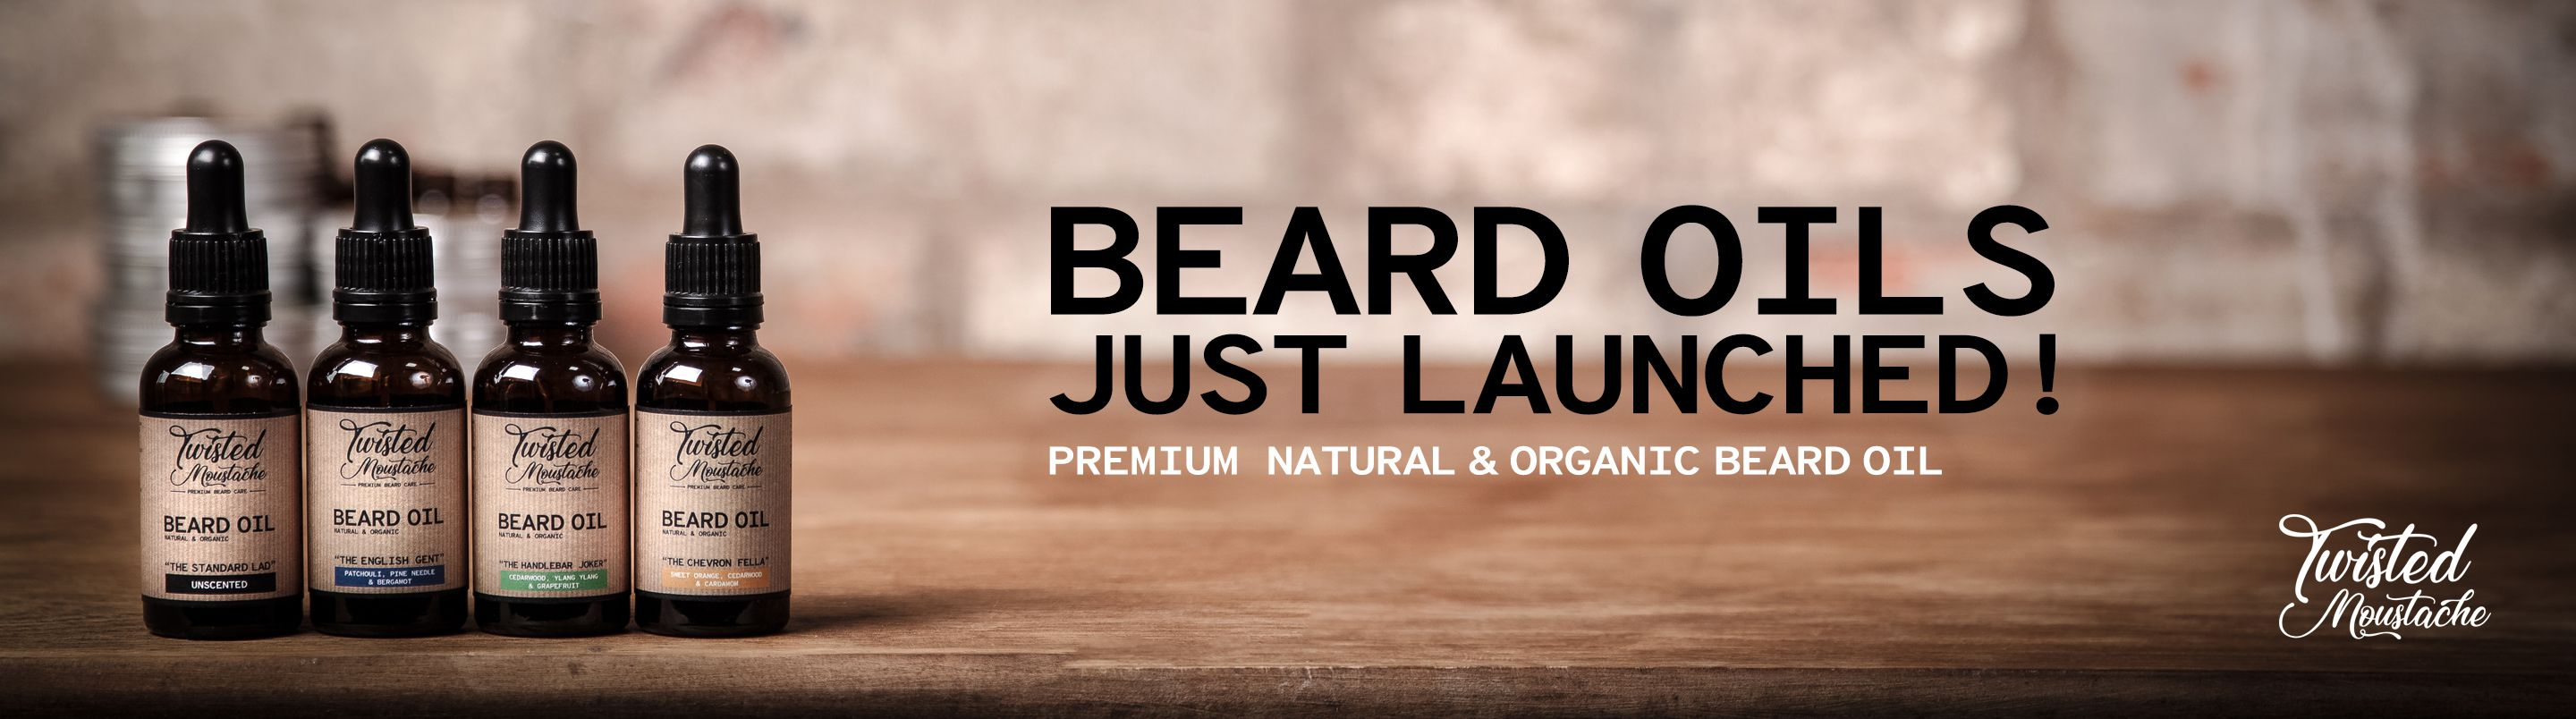 Premium Quaility Beard Oil - Buy now!